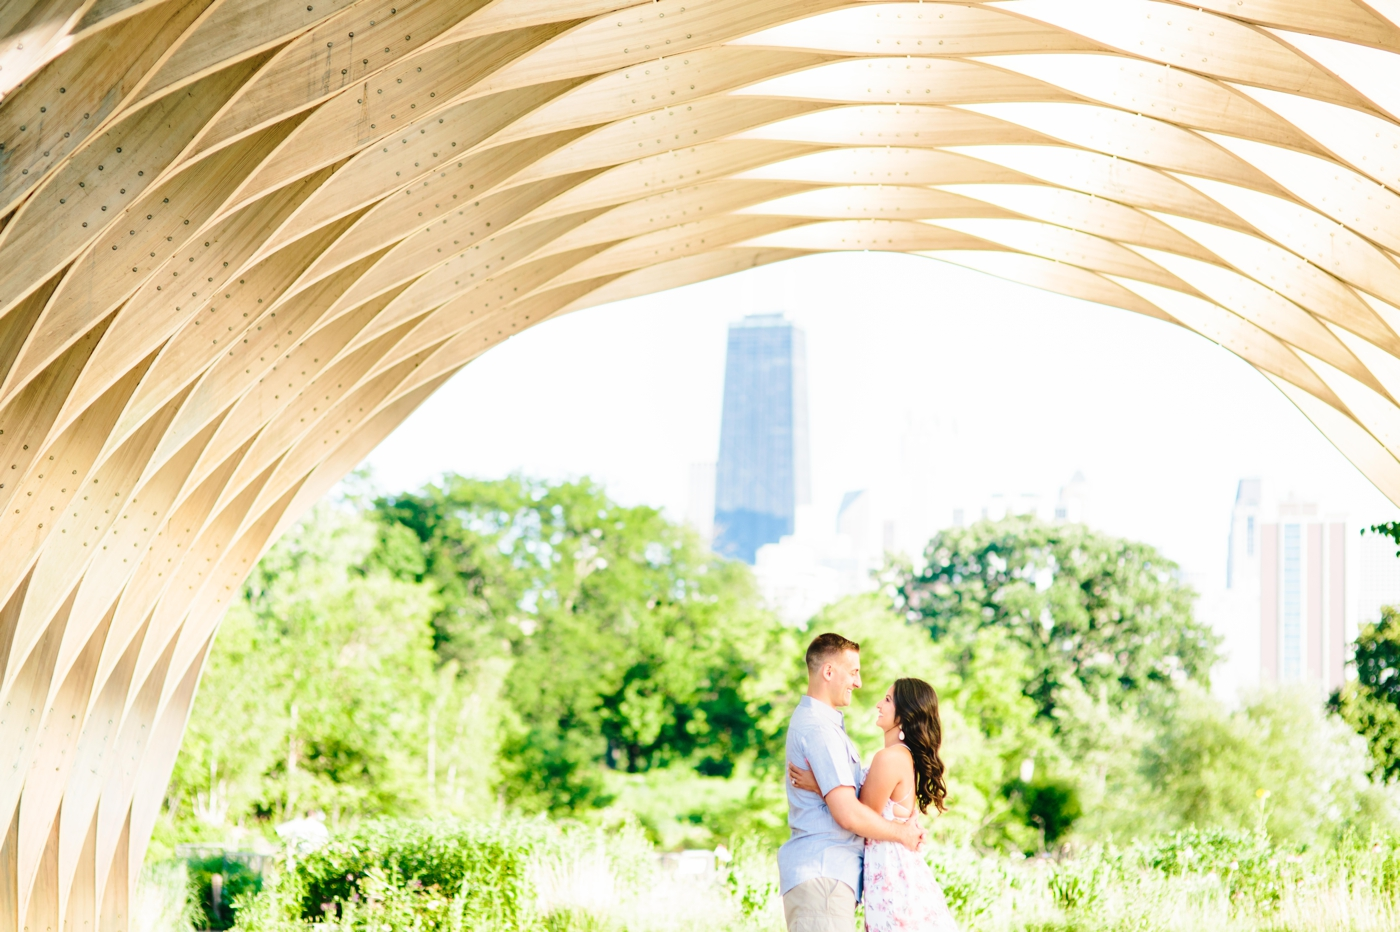 chicago-fine-art-wedding-photography-paulerica9